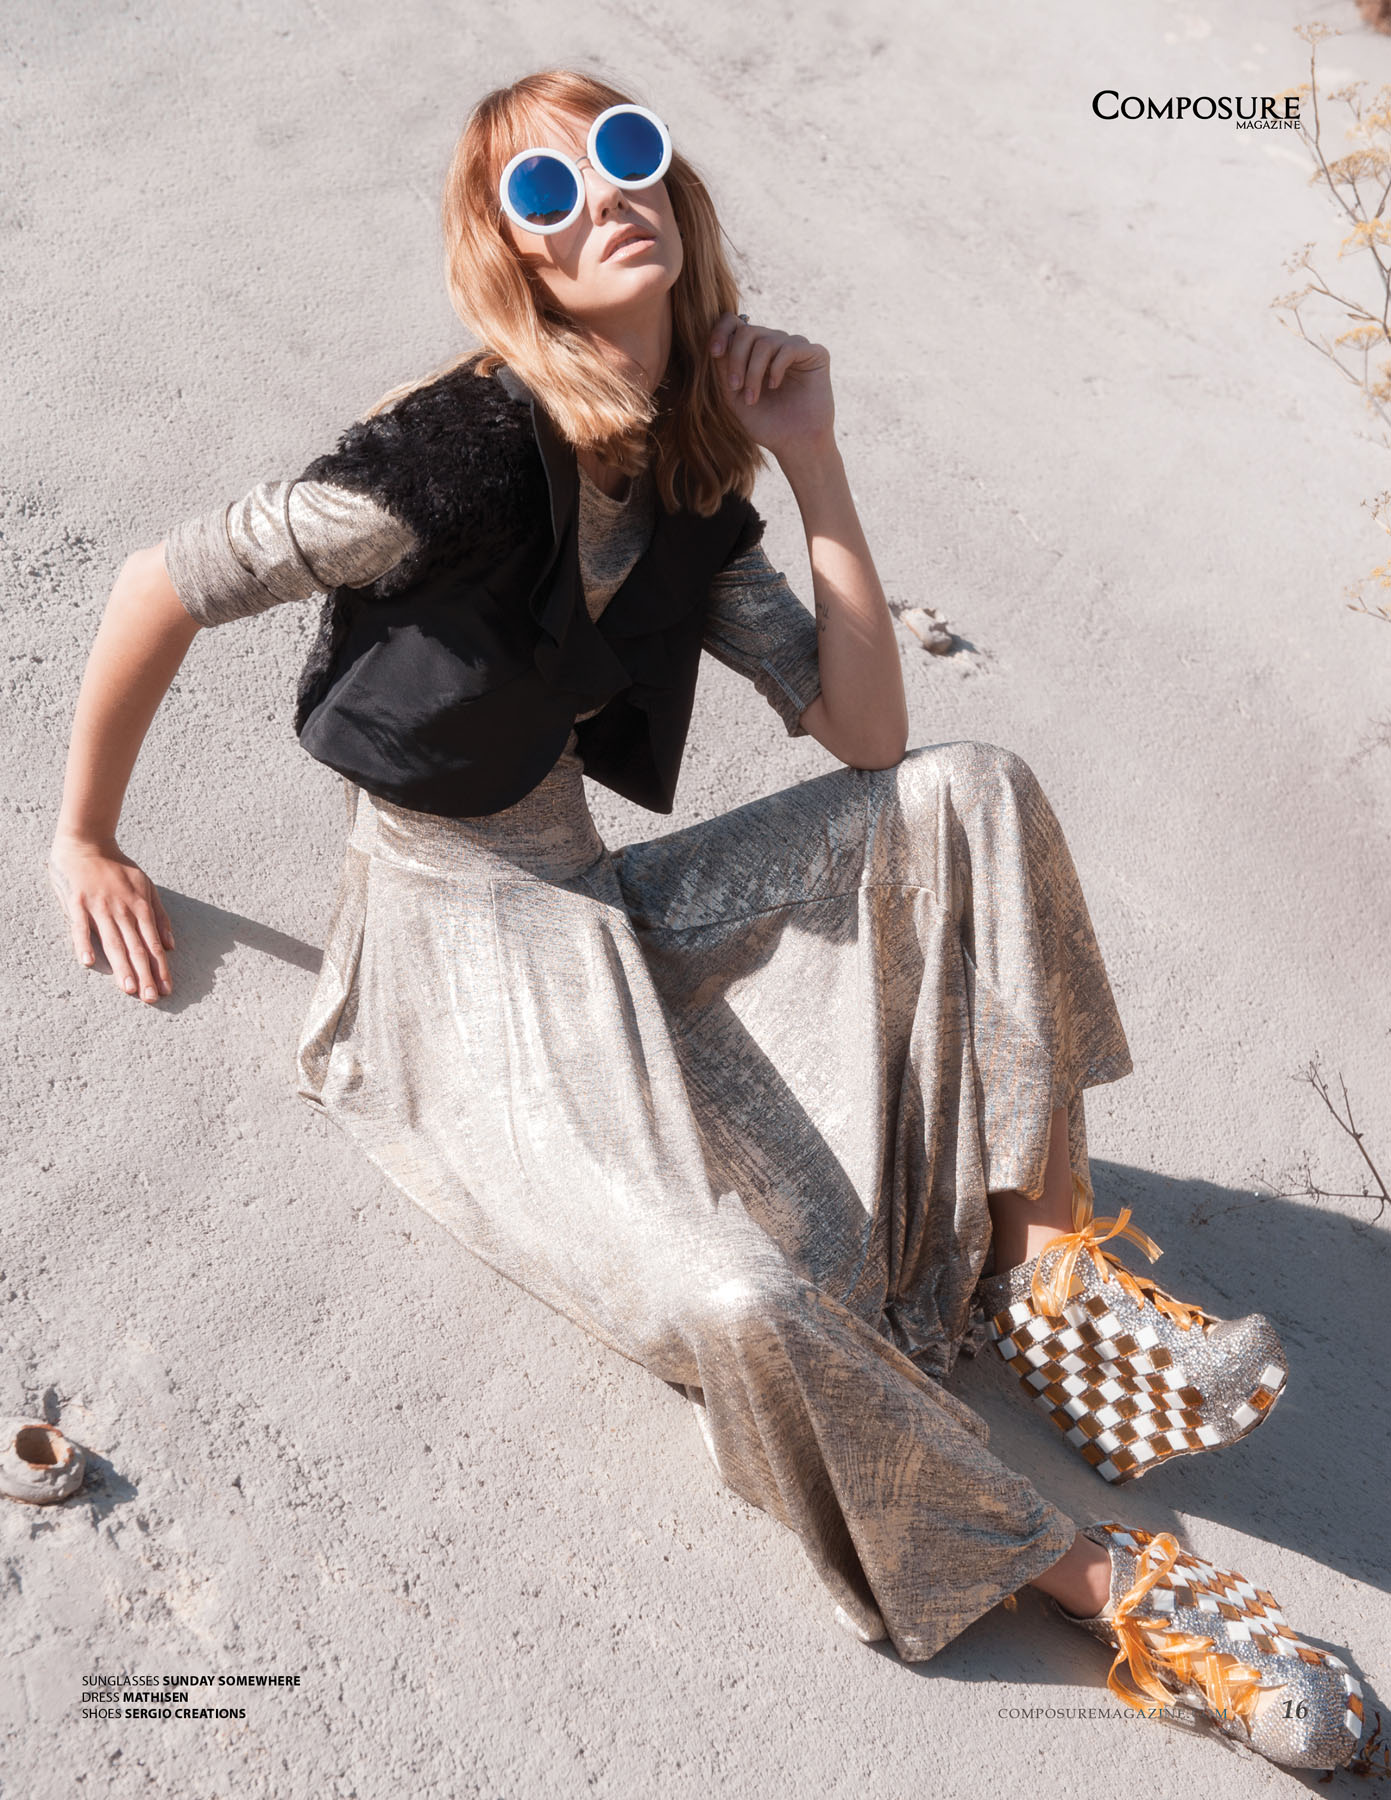 Fashion Editorial by Rupert Kaldor for Composure Magazine